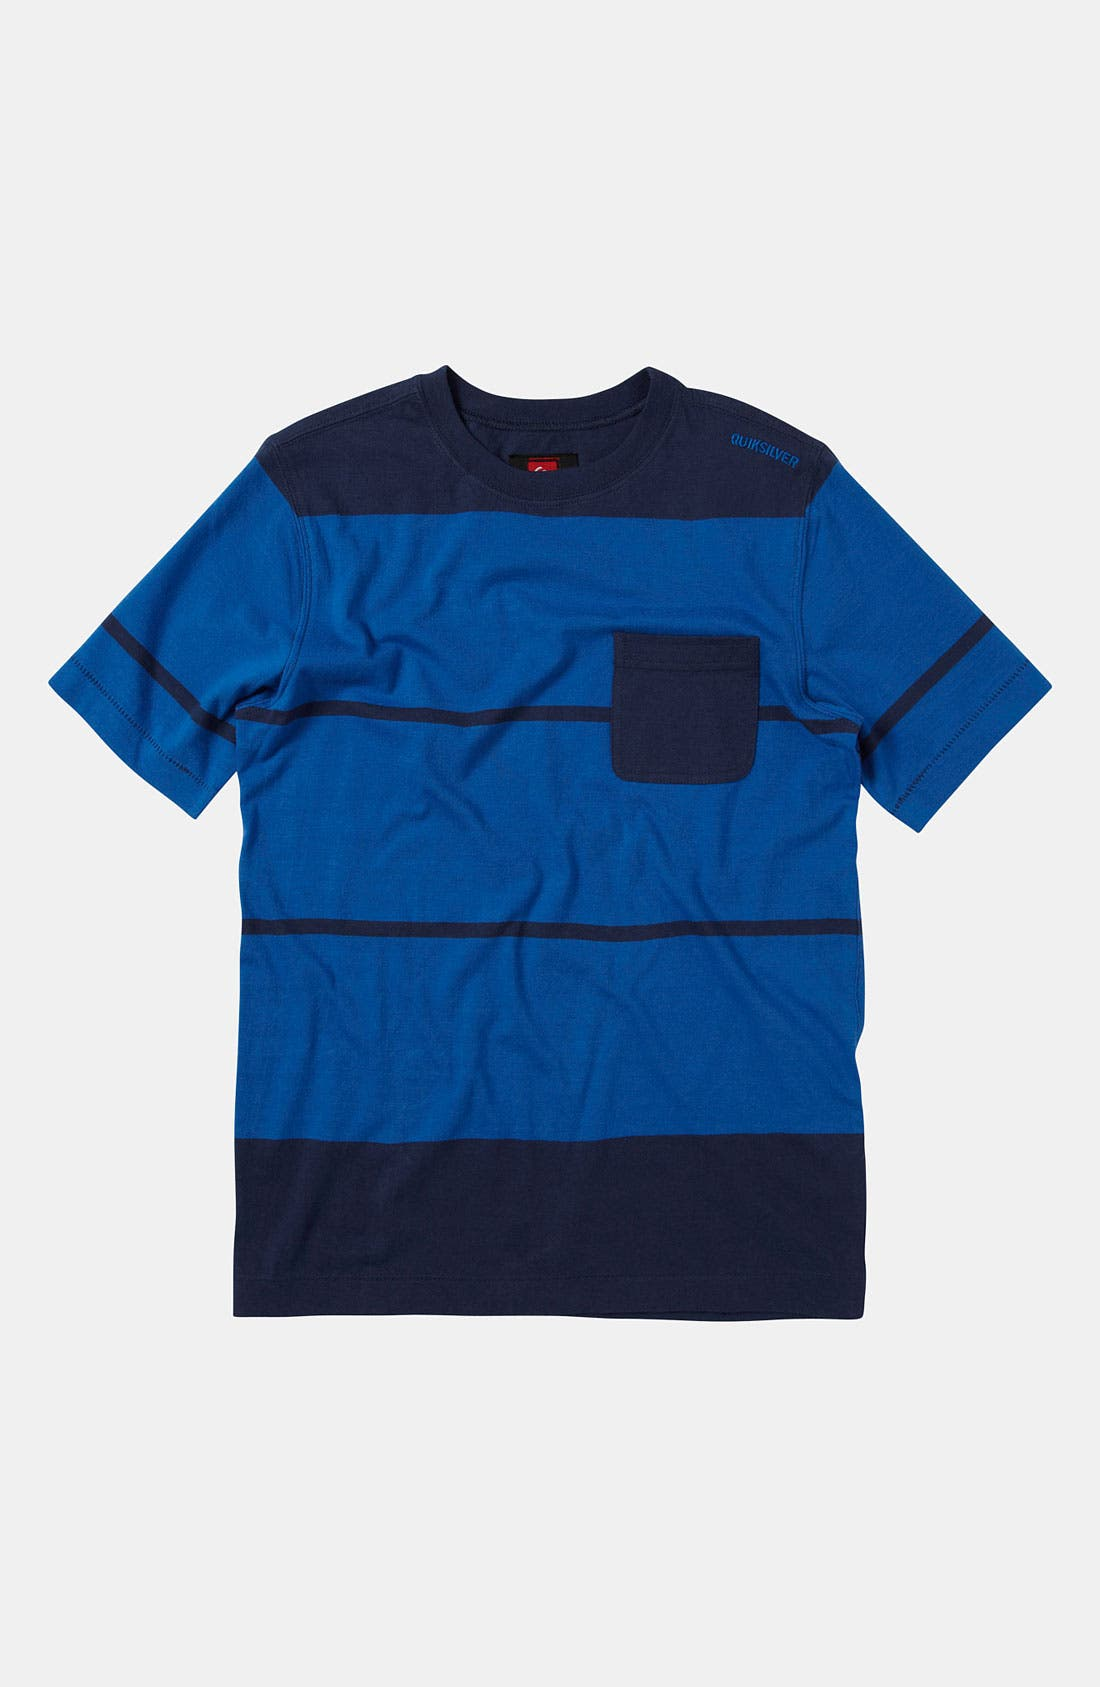 Alternate Image 1 Selected - Quiksilver 'Tenney' T-Shirt (Big Boys)